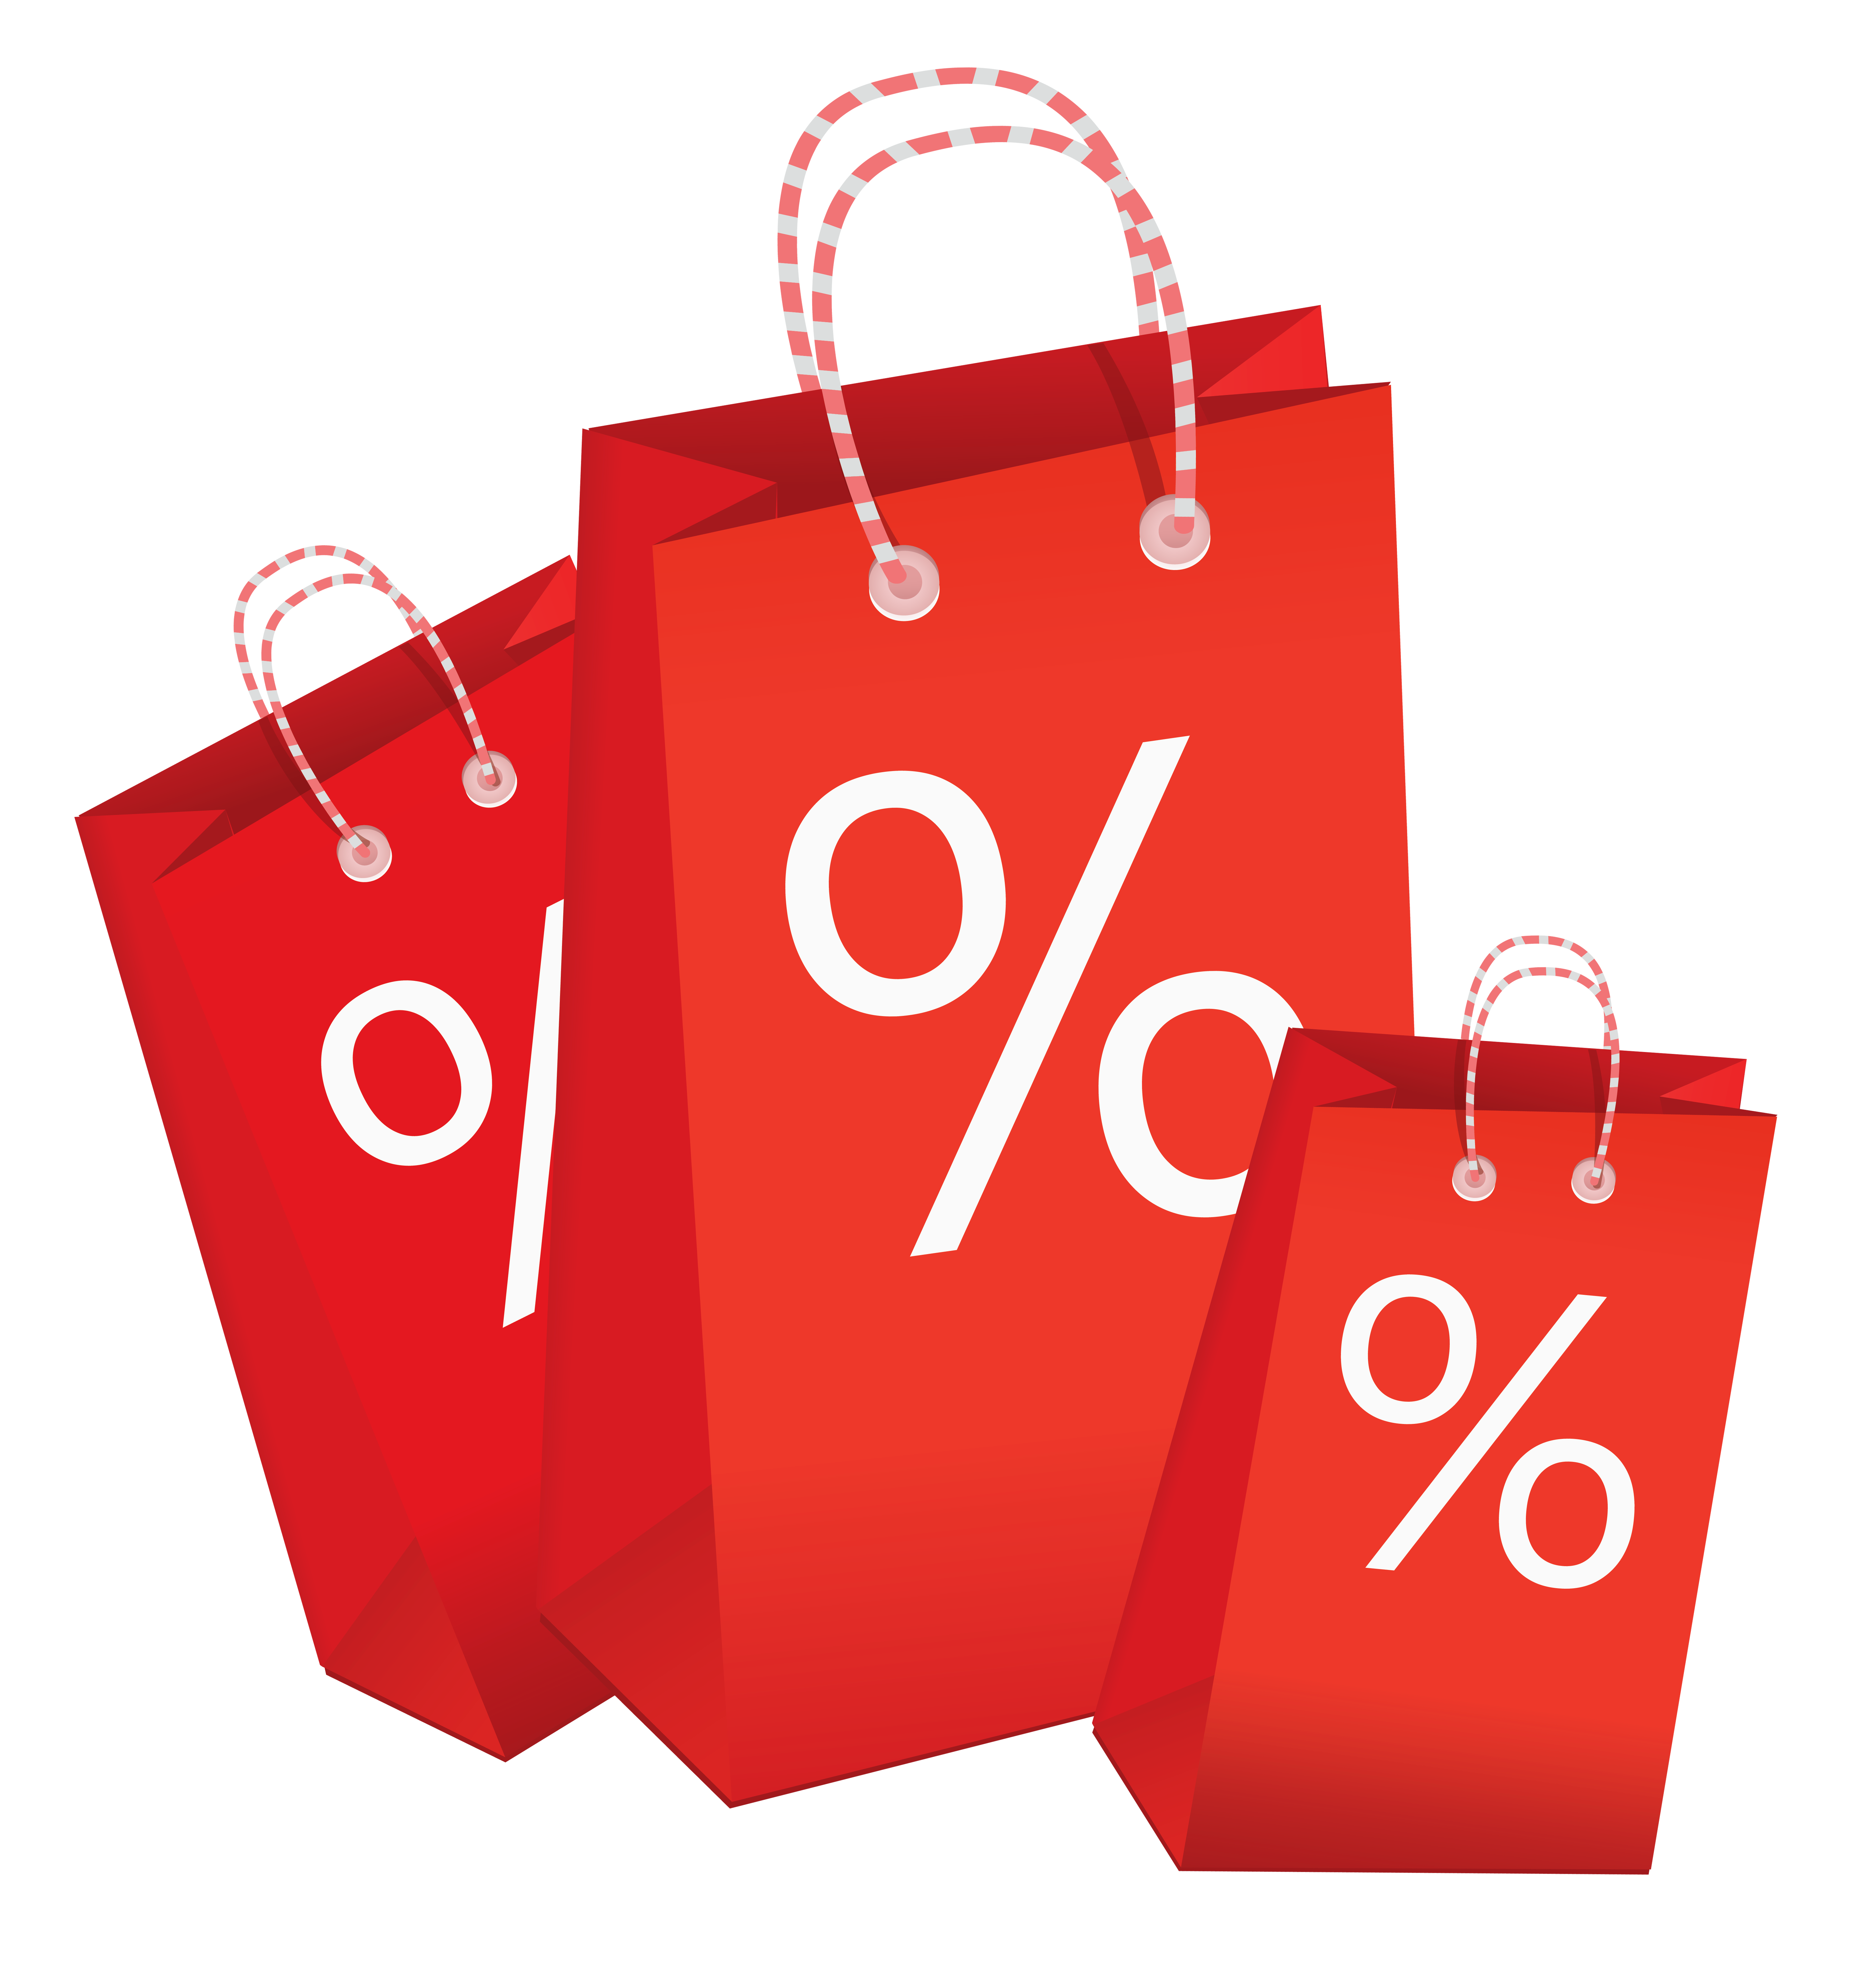 Shoping Shopping Discount Sales Cart Bag Tag PNG Image